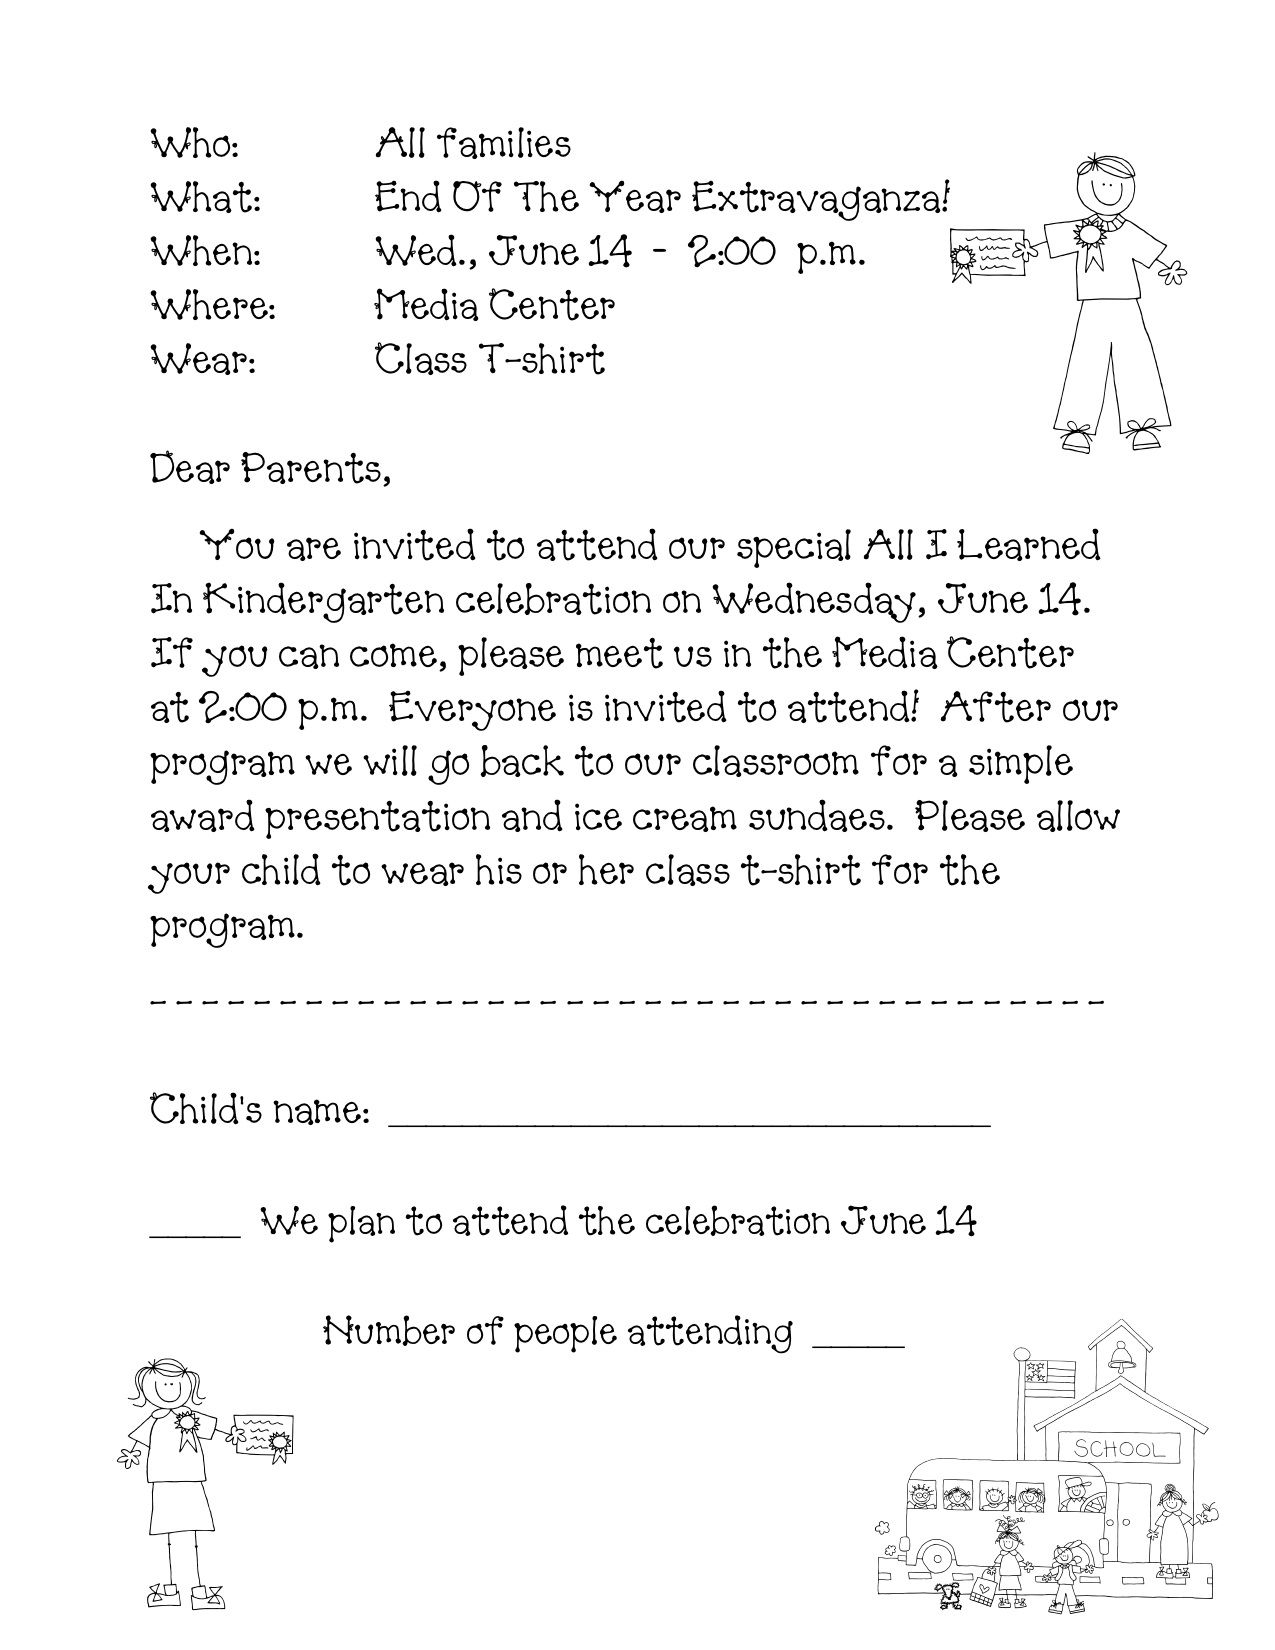 Preschool Welcome Letter Template - Preschool Graduation Program Sample Google Search